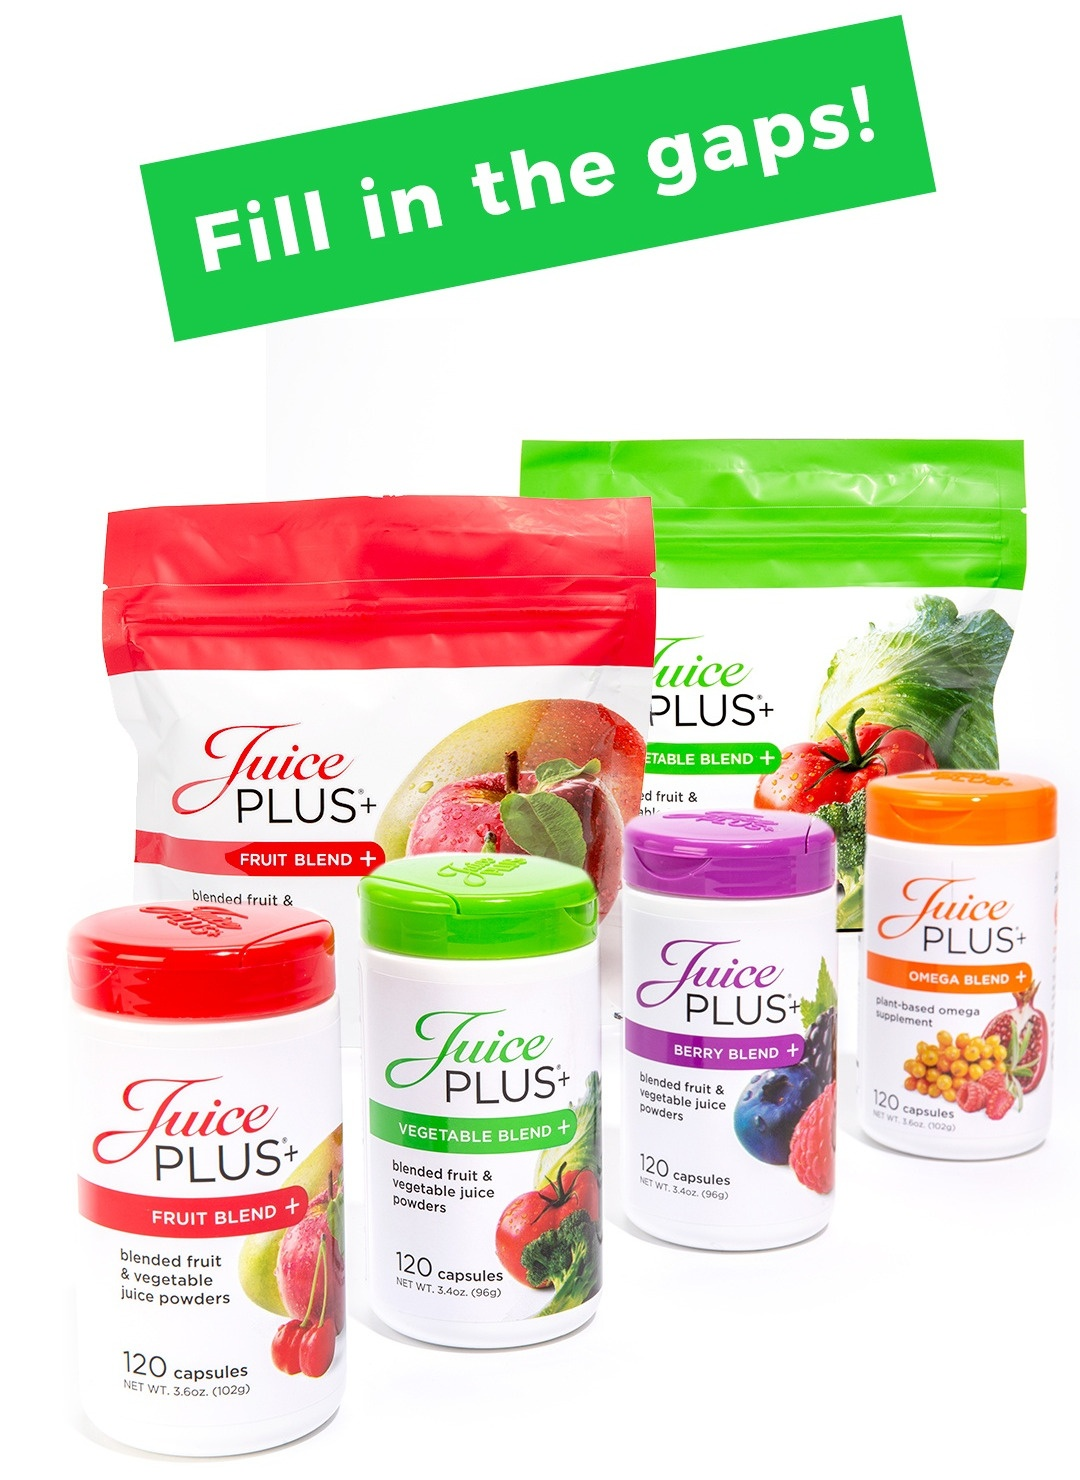 Extreme Produce - Knoxville Tn on Echelon Local | Juice Plus+ Distributor | (865) 309-5057 | Easily improve your wellness and quality of life by making a simple change.